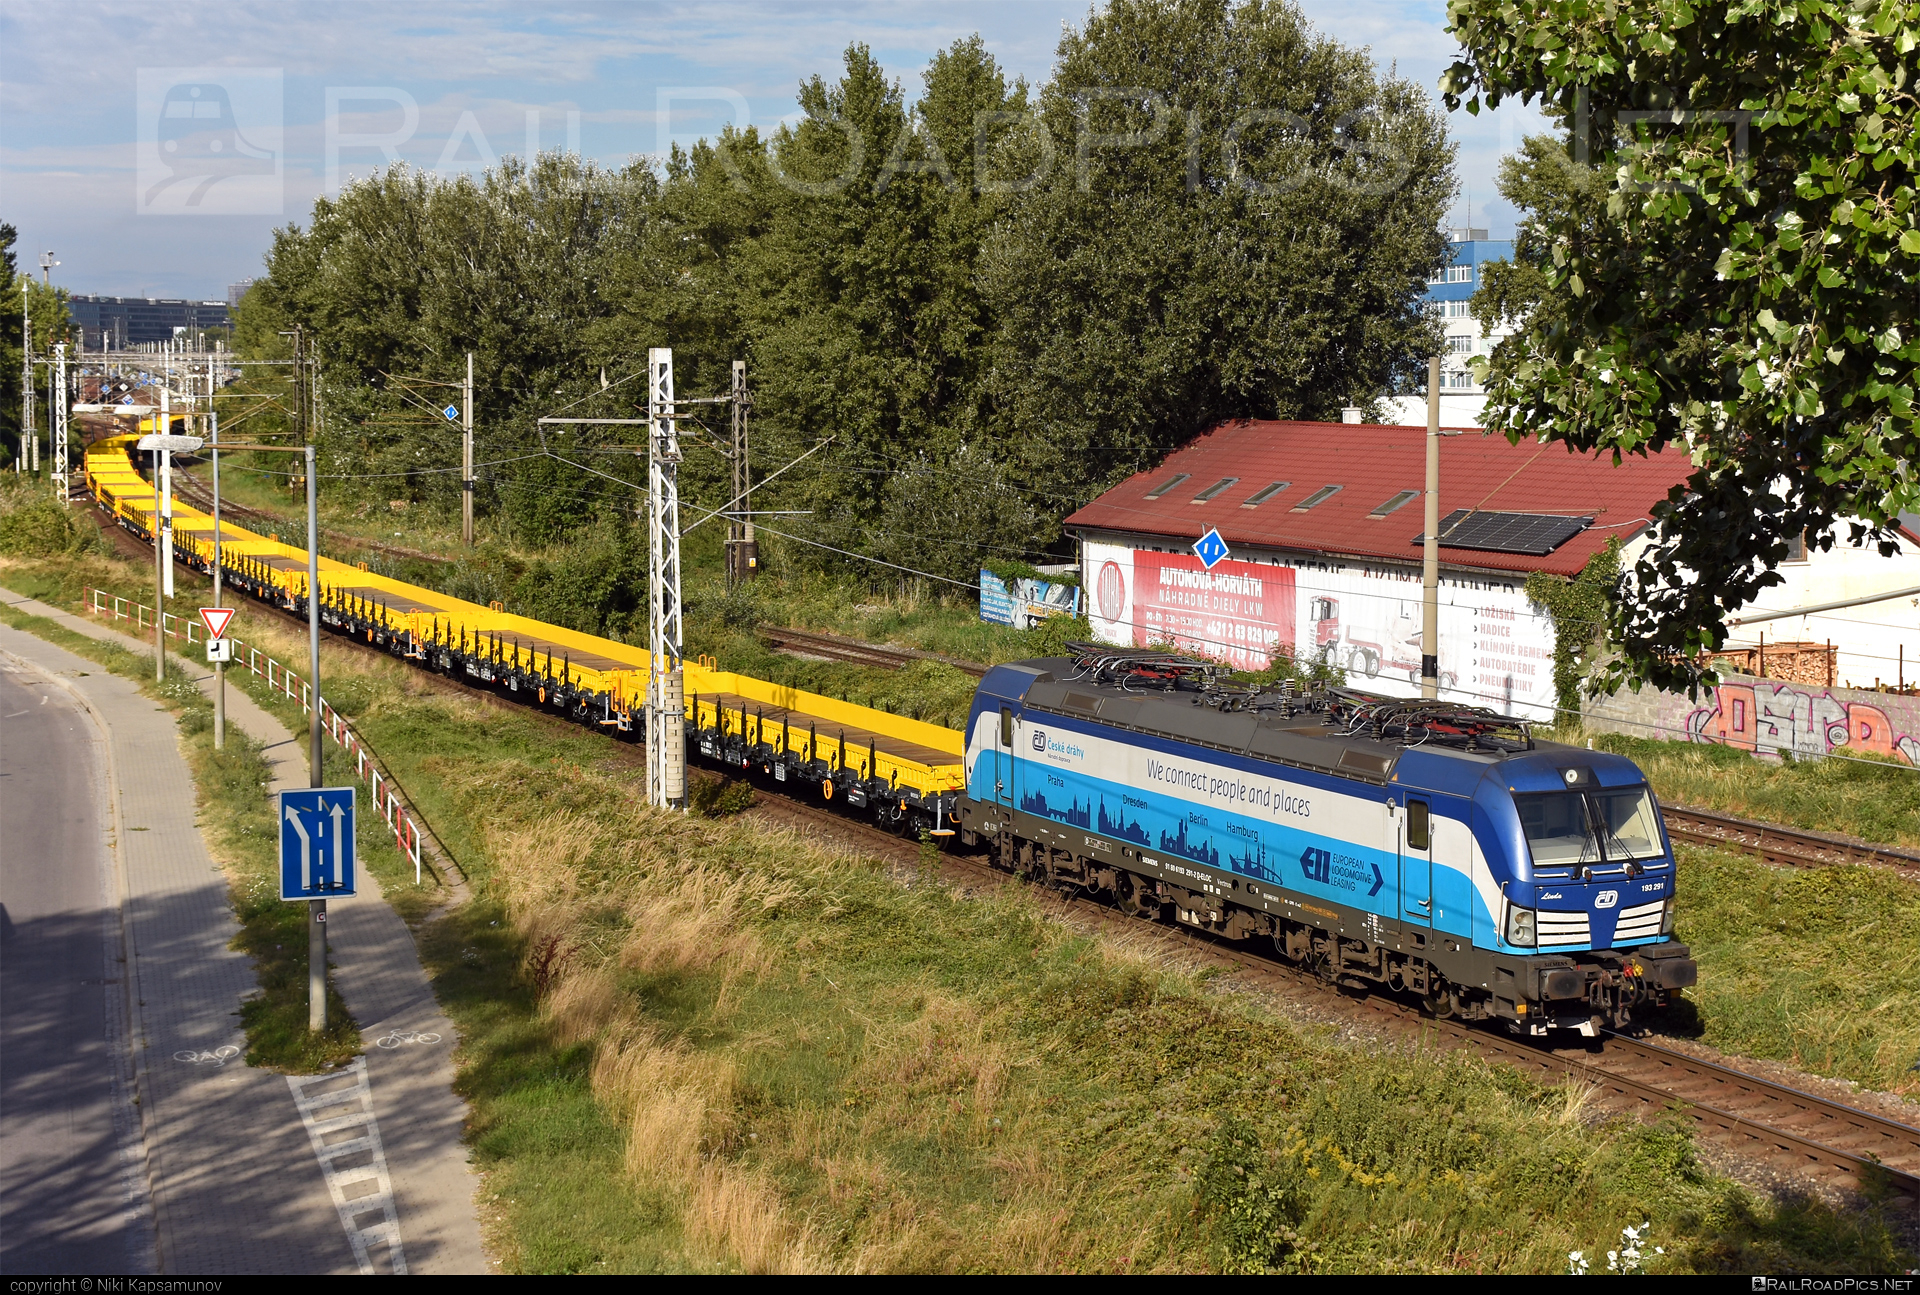 Siemens Vectron MS - 193 291 operated by ČD Cargo, a.s. #cdcargo #ell #ellgermany #eloc #europeanlocomotiveleasing #siemens #siemensvectron #siemensvectronms #vectron #vectronms